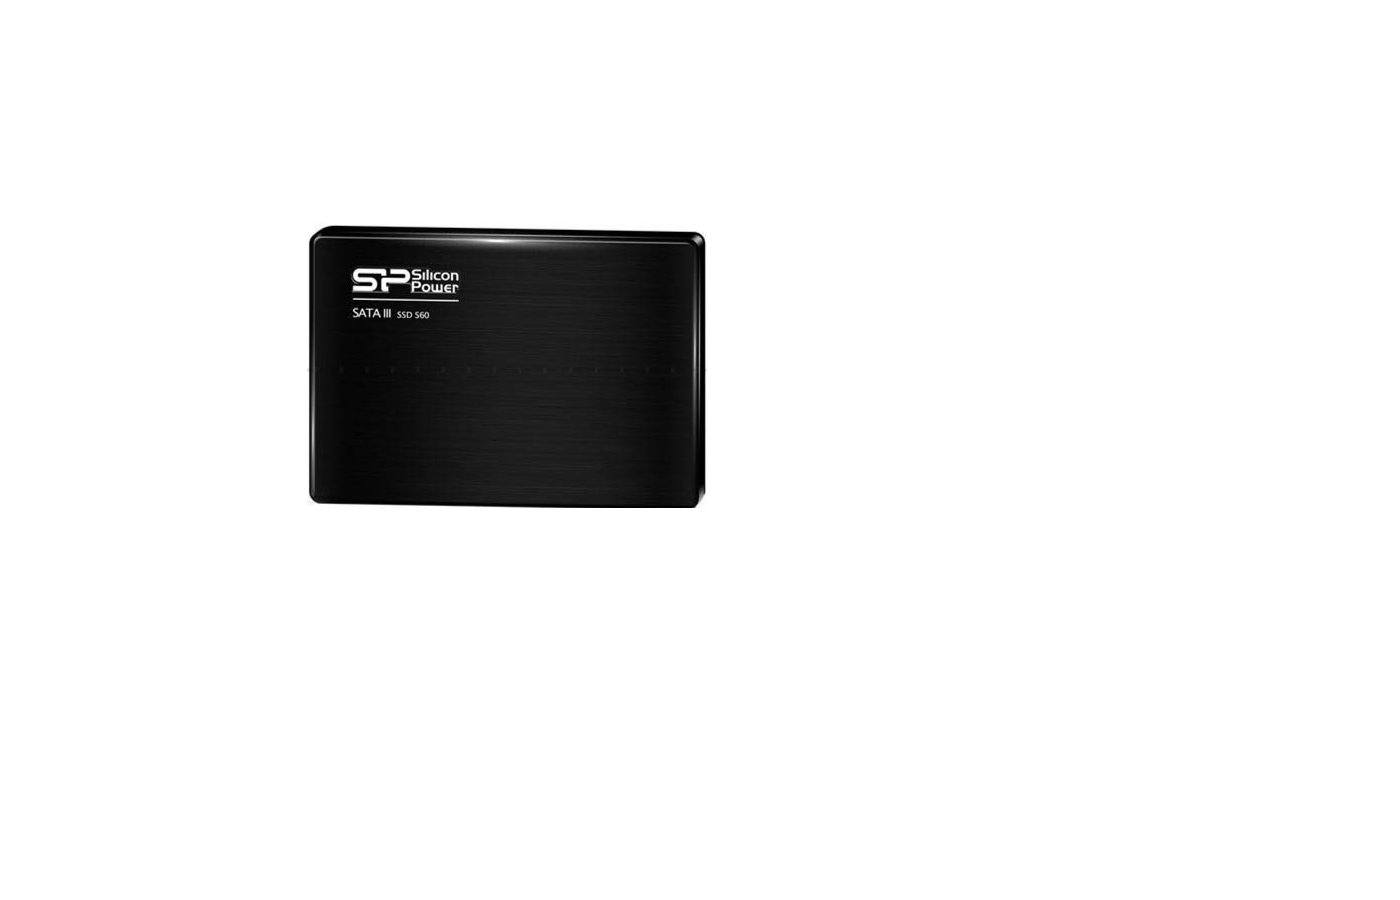 SSD жесткий диск Silicon Power SATA III 240Gb SP240GBSS3S60S25 S60 2.5""